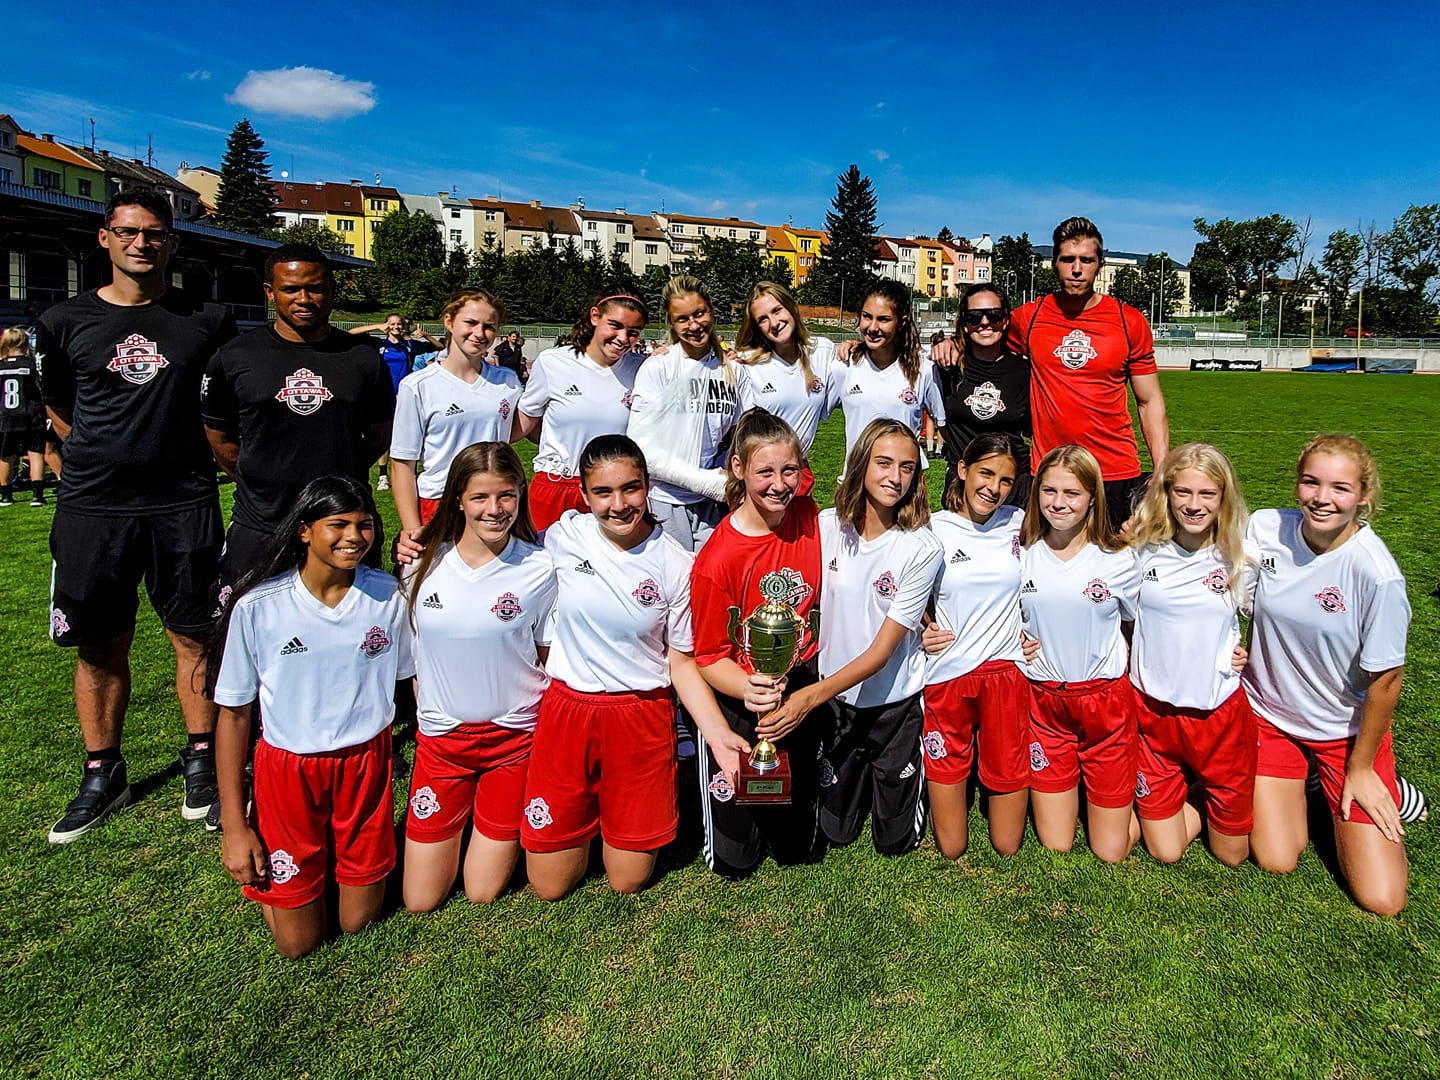 2005 Girls home from Pelimatkat Cup in the Czech Republic